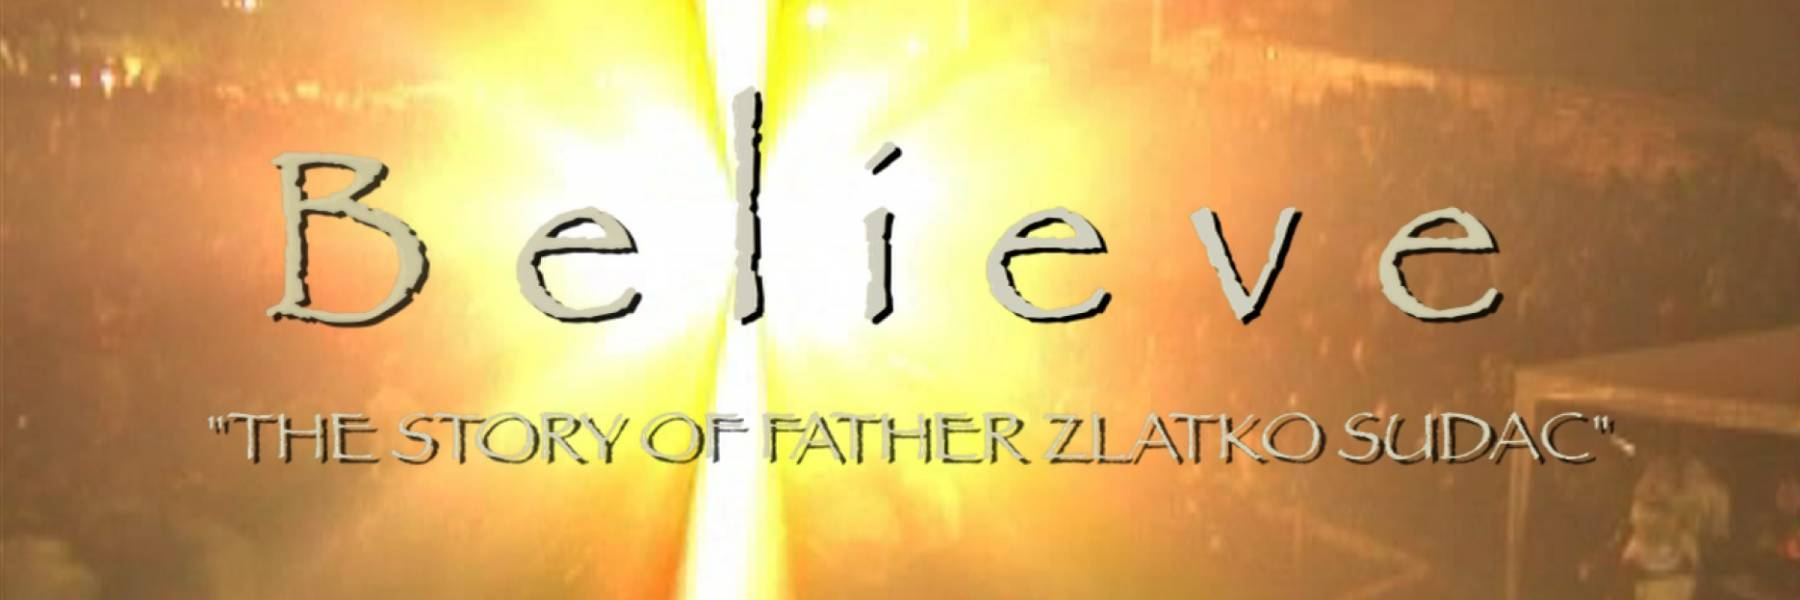 BELIEVE: The Story of Father Zlatko Sudac